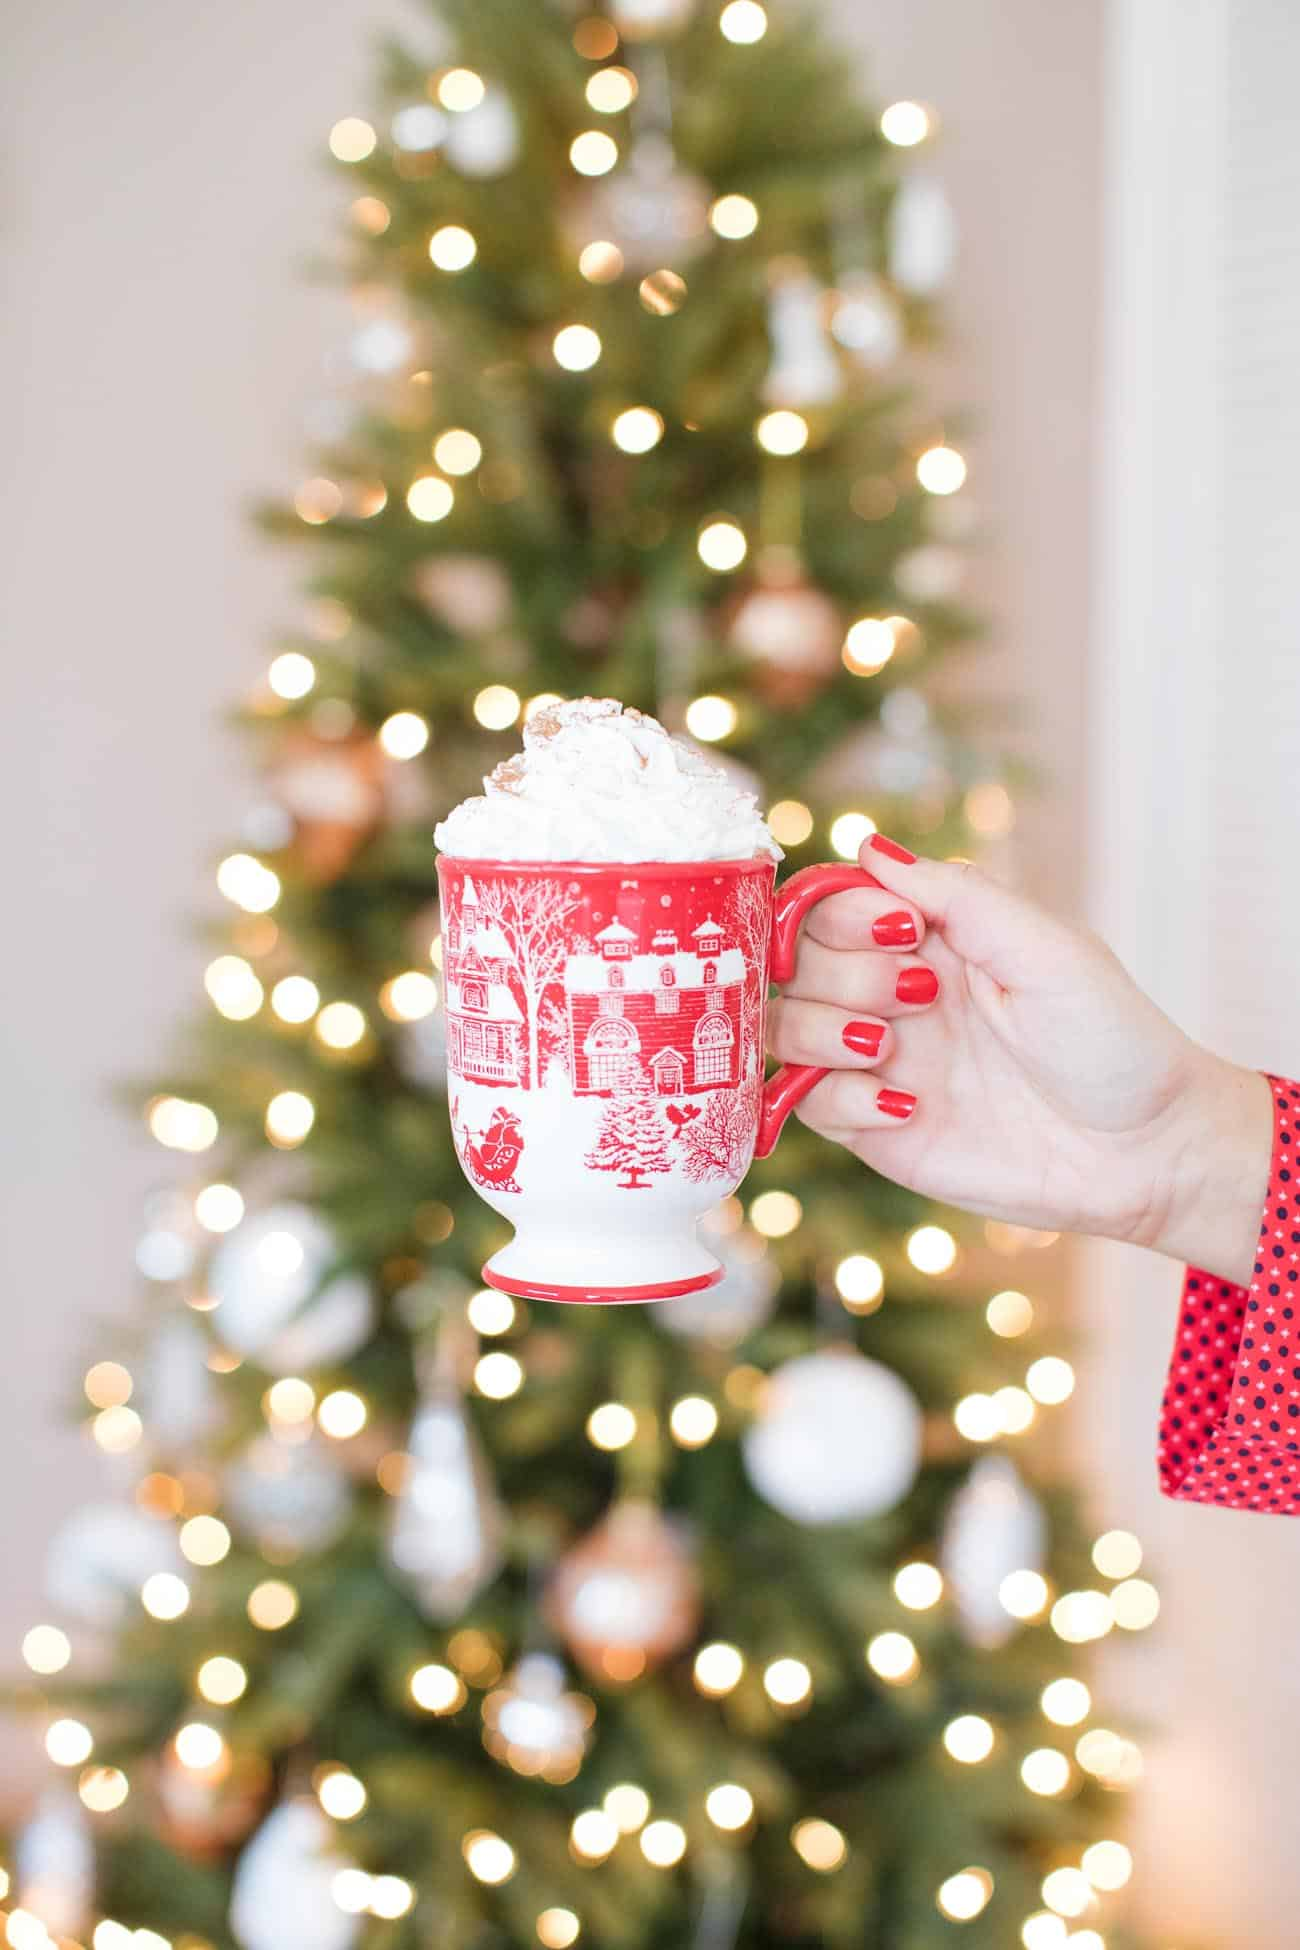 spiked hot chocolate recipe, christmas ideas - My Style Vita @mystylevita